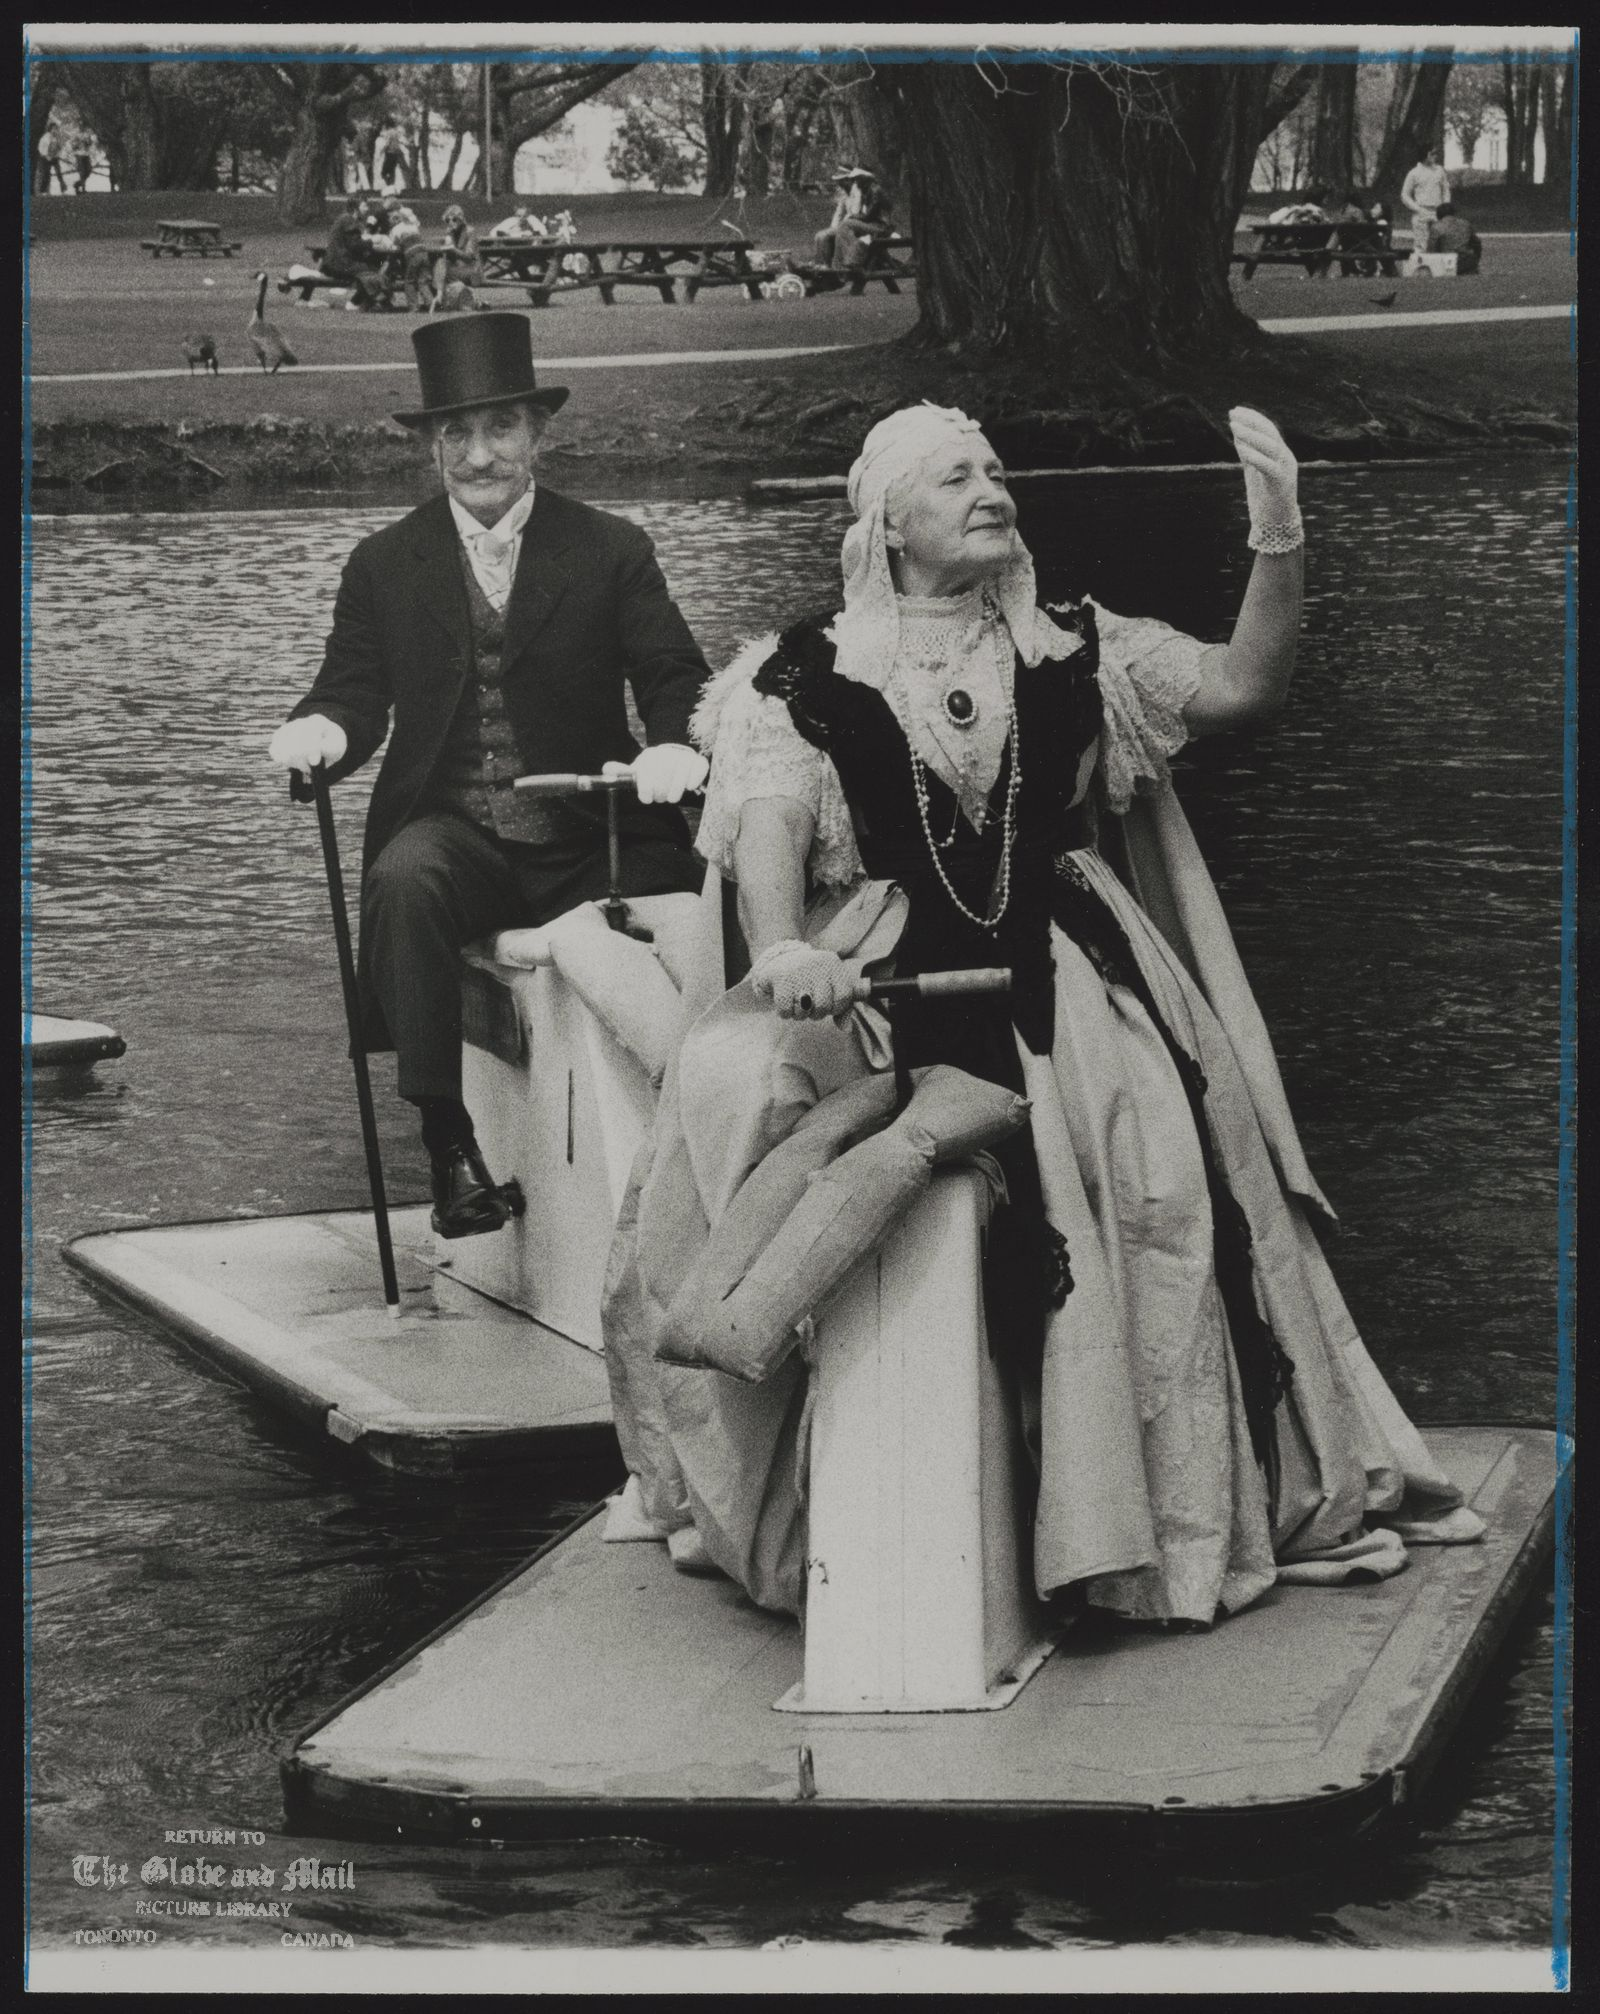 The notes transcribed from the back of this photograph are as follows: Queen Victoria and Prince Albert, played by Ann and Derrick Hart, arrive in Centreville.